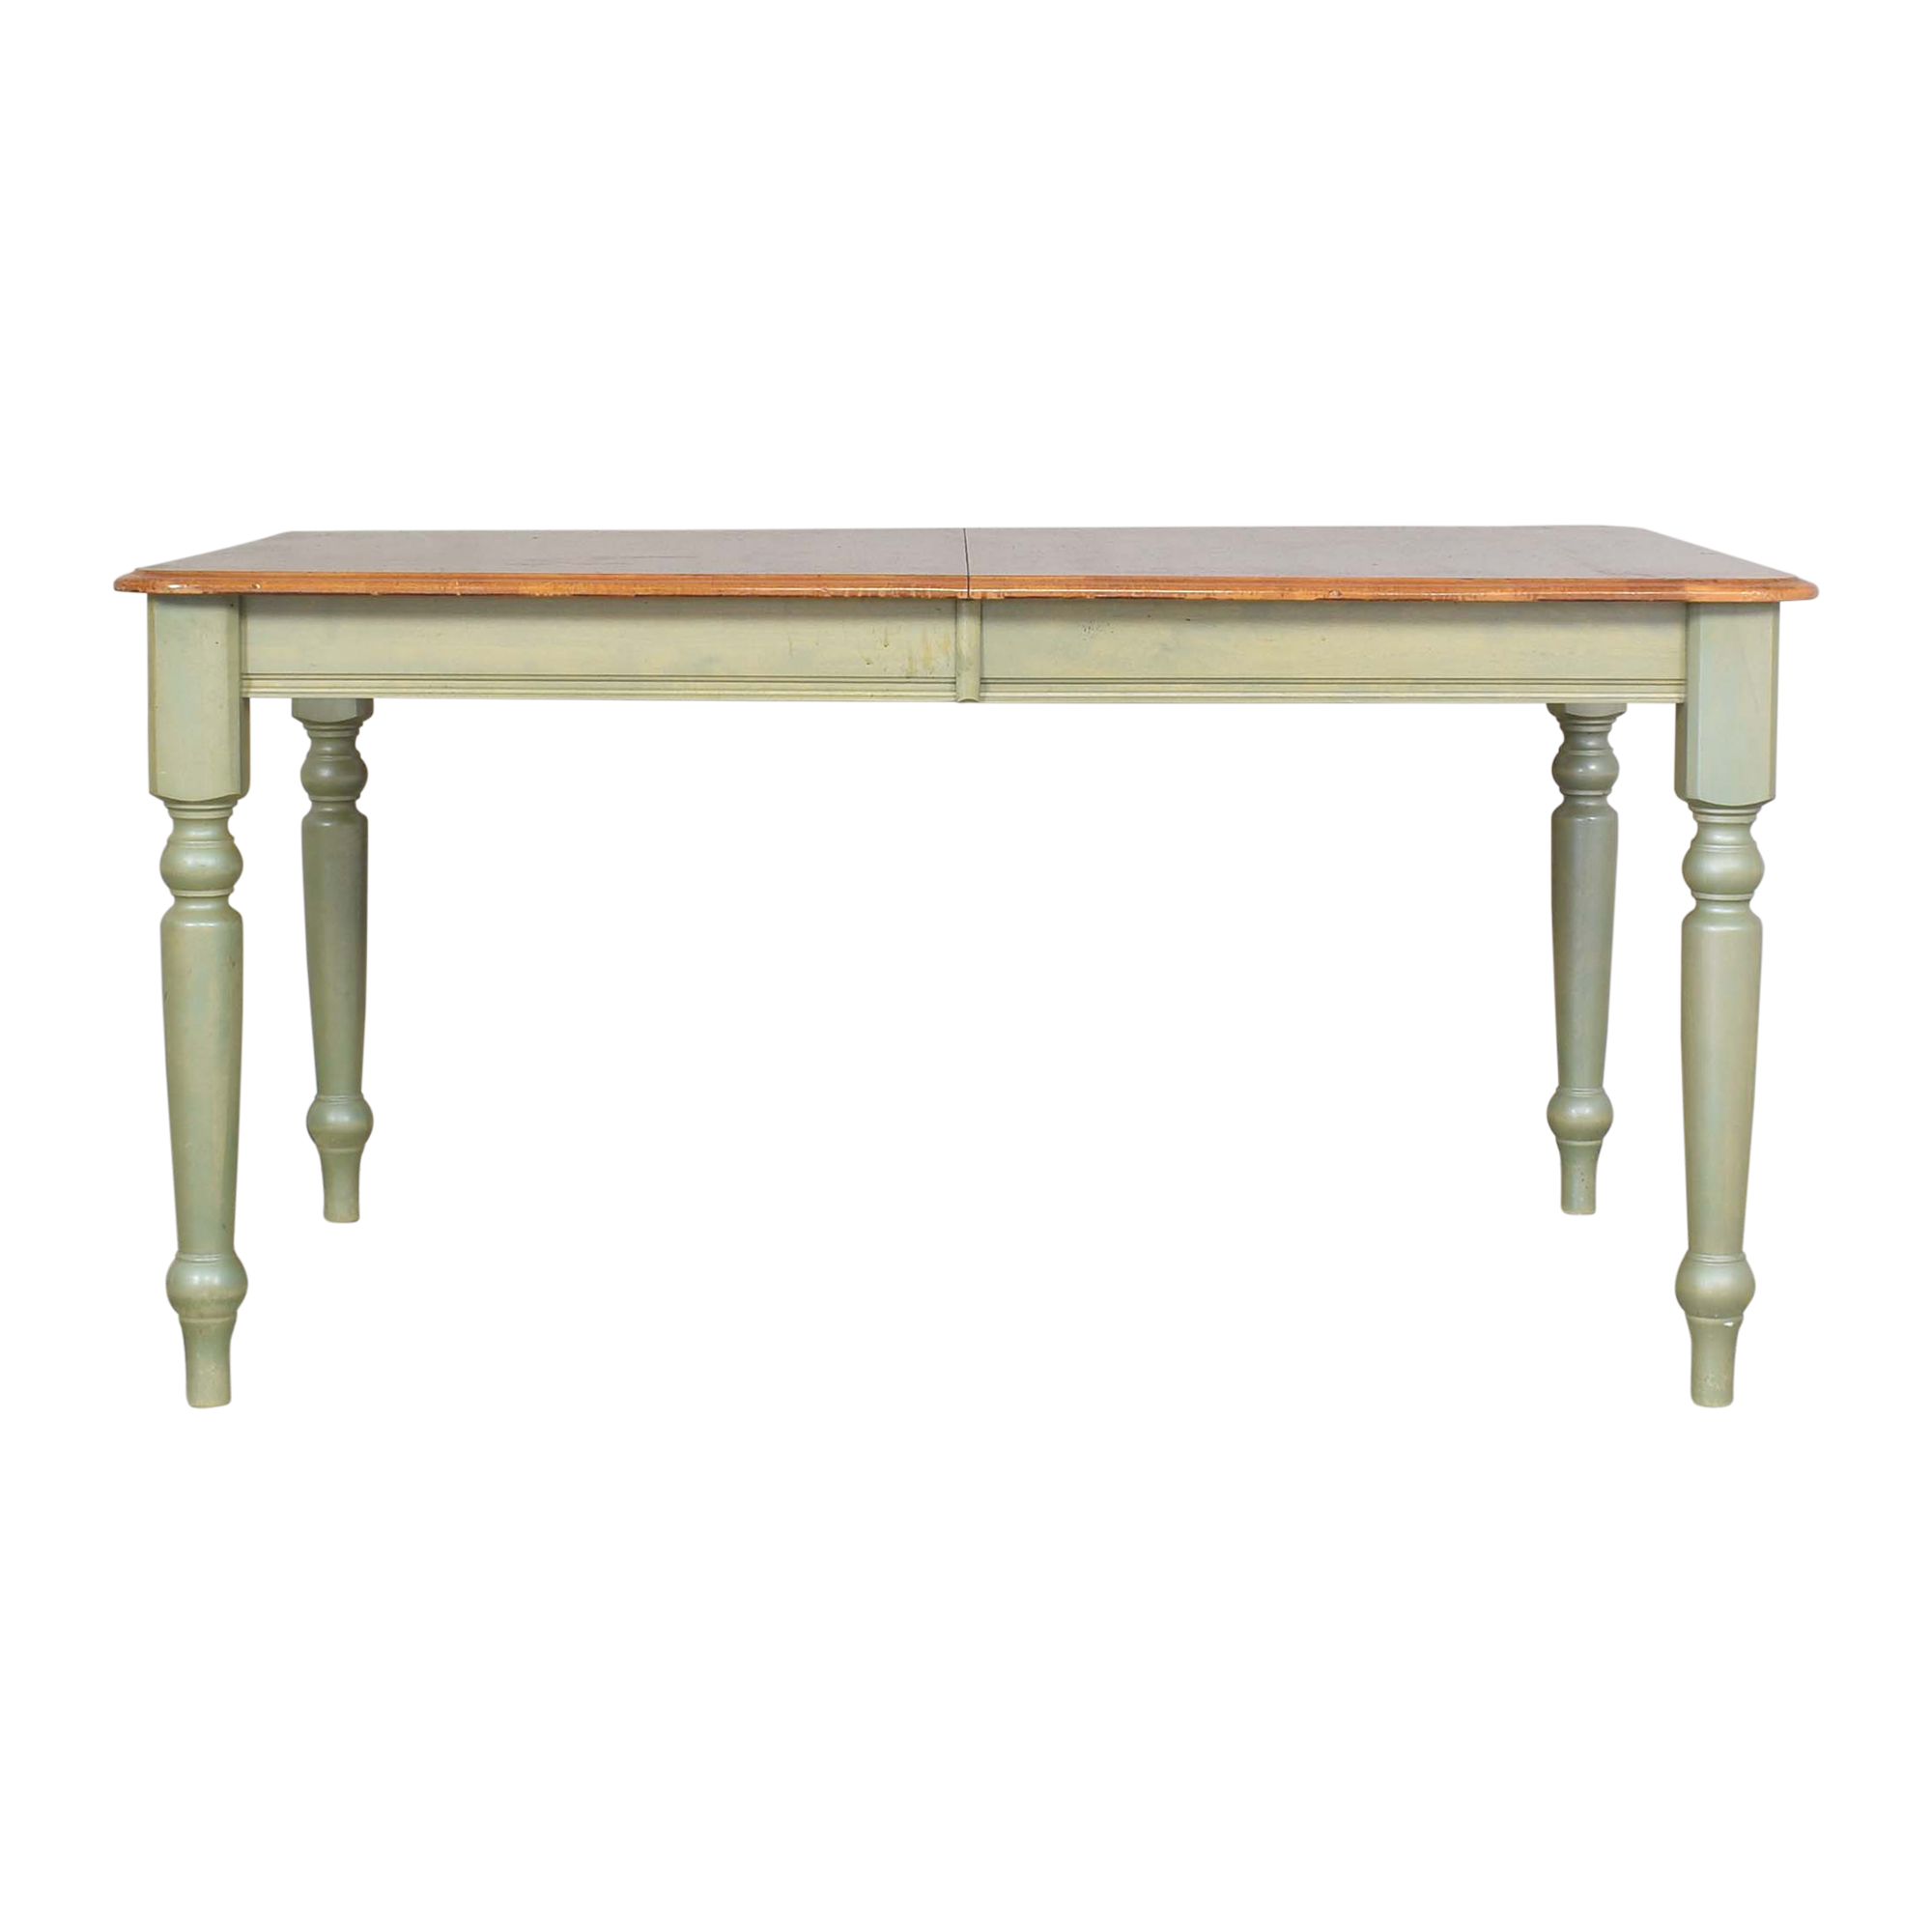 buy Canadel Canadel Farmhouse Dining Table online